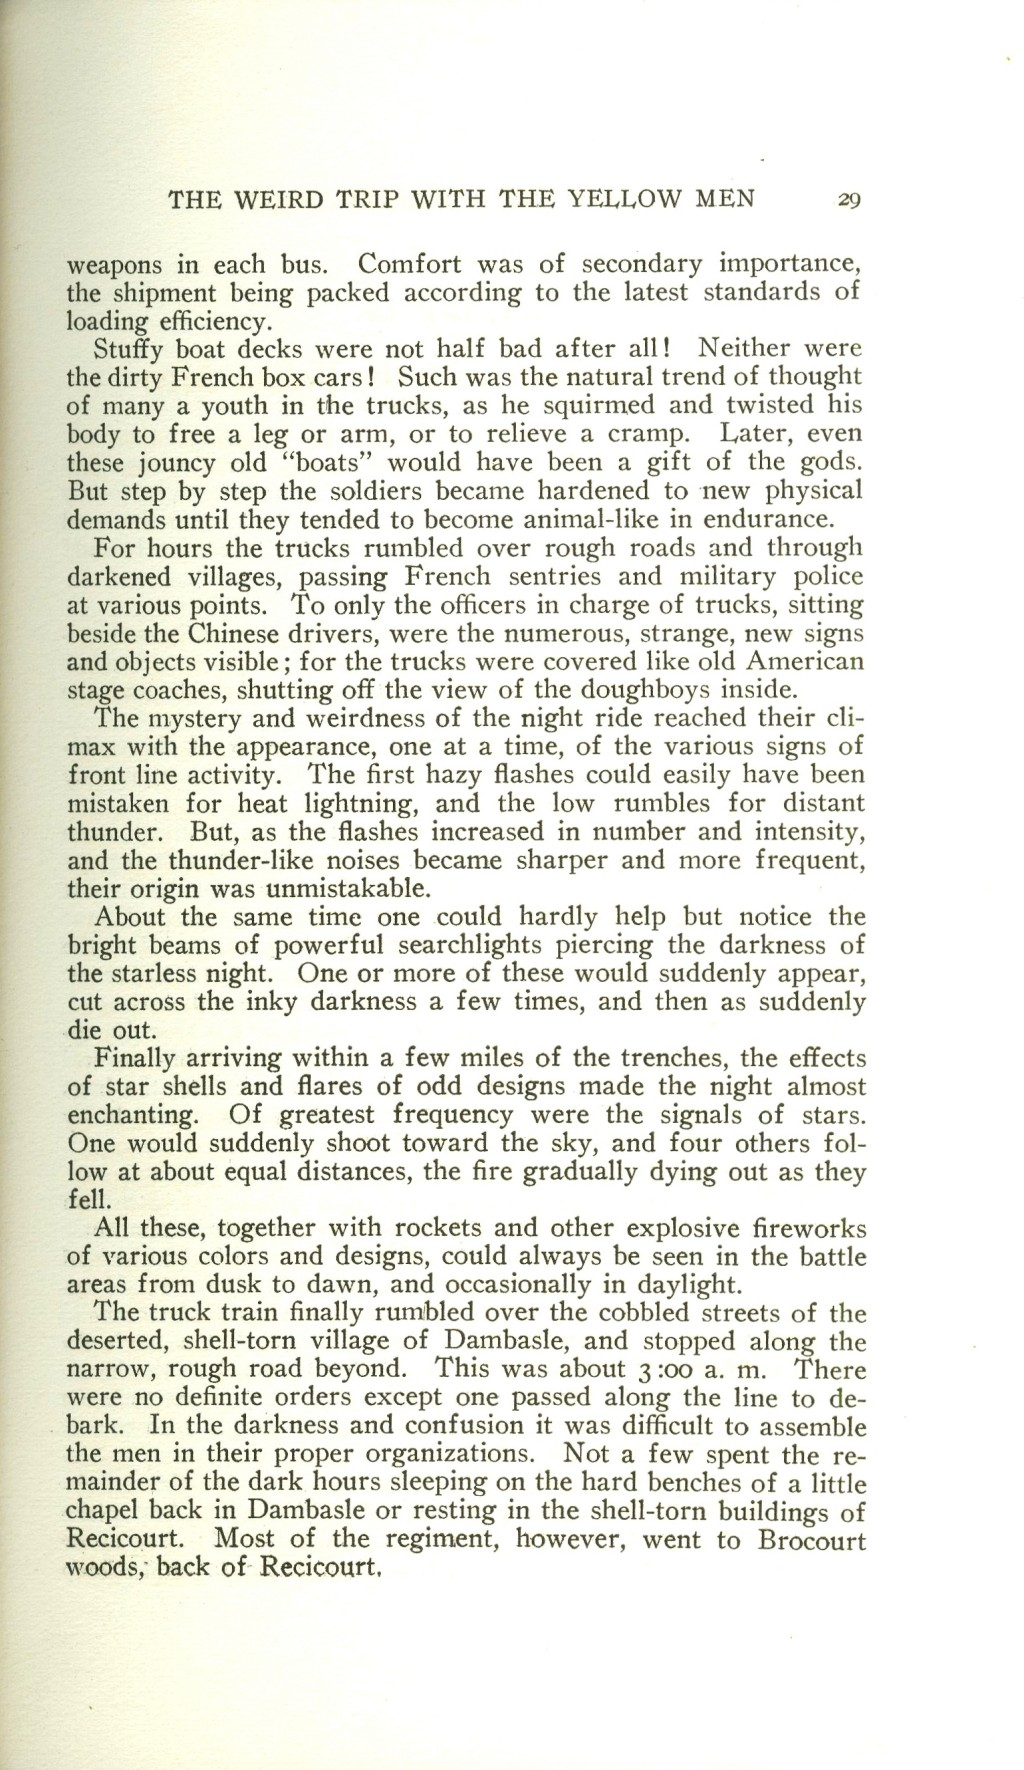 Veterans 314th Infantry Regiment A.E.F. - Under The Lorraine Cross - book by Arthur H. Joel - 1921 - Page 029